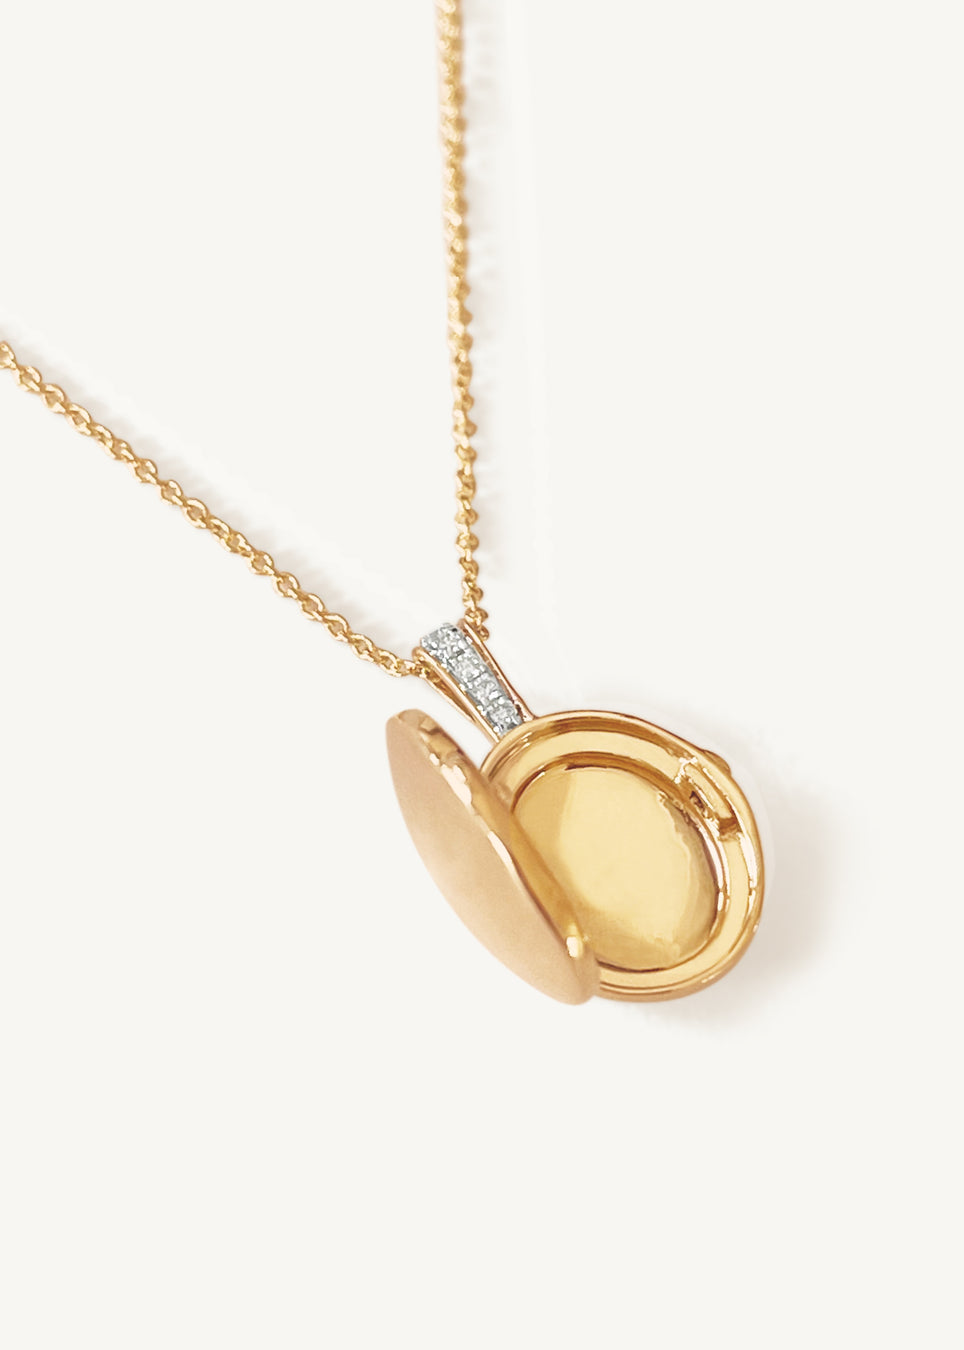 Maison Oval Locket II (Pendant Only)